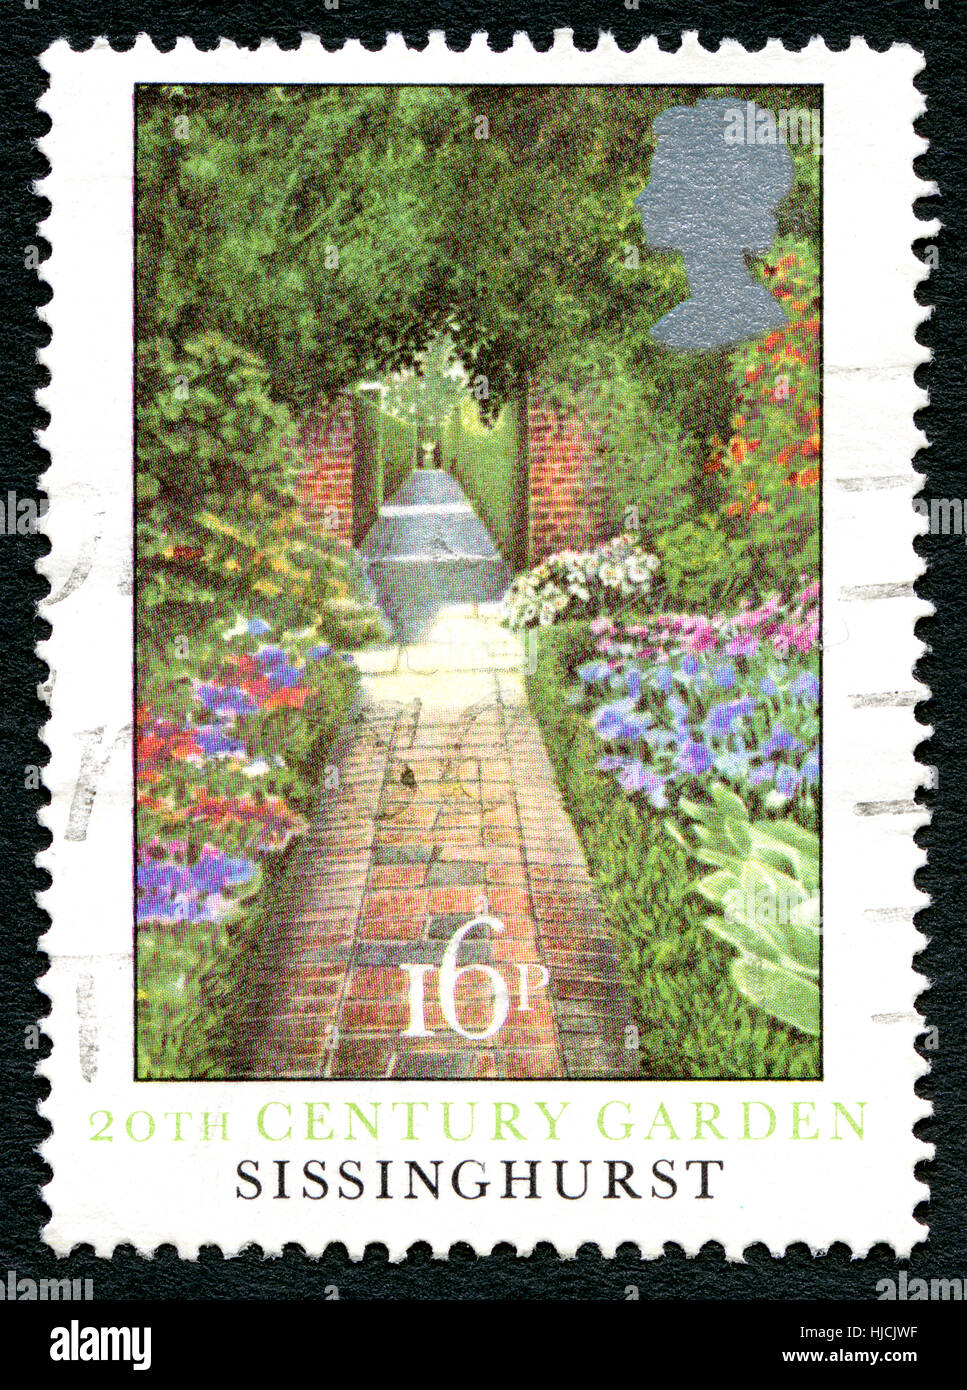 GREAT BRITAIN - CIRCA 1983: A used postage stamp from the UK, depicting an illustration of Sissinghurst Garden from - Stock Image